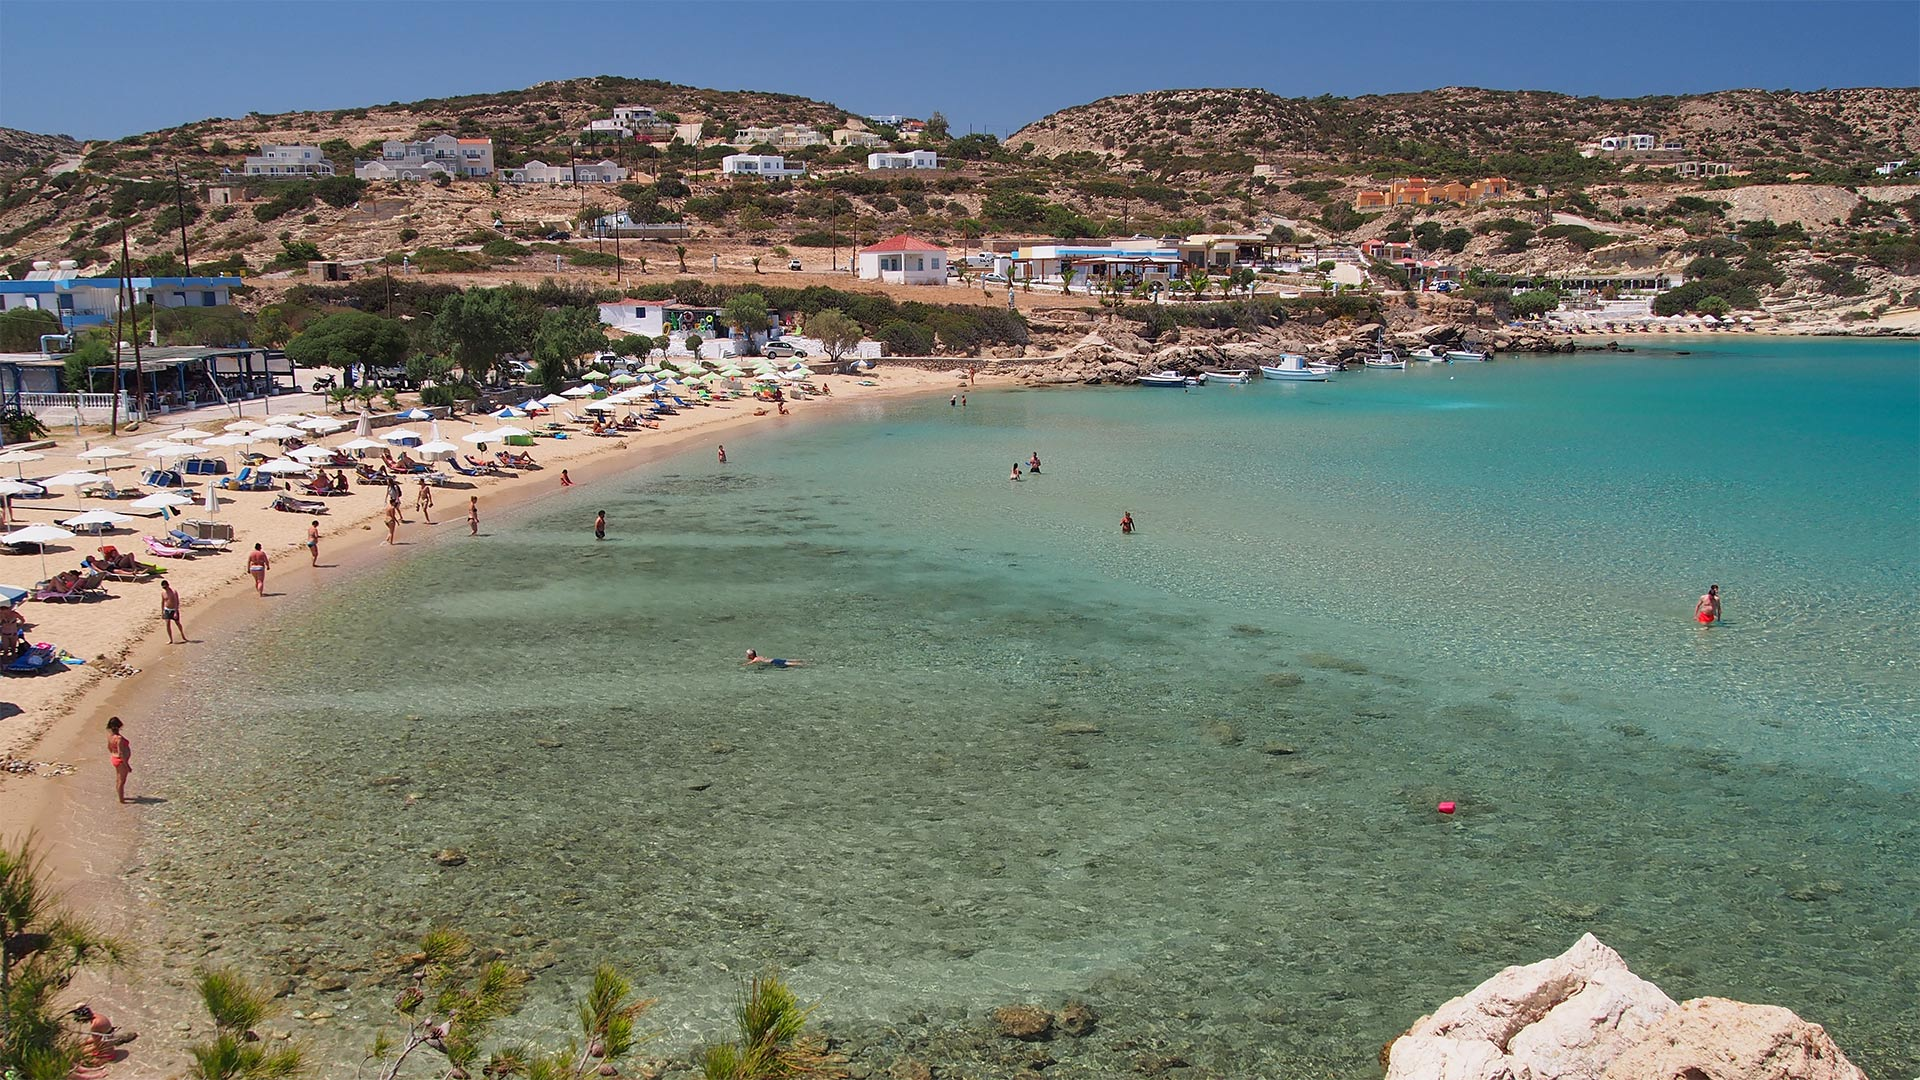 images/slider/amoopi-beach-karpathos-slider.jpg